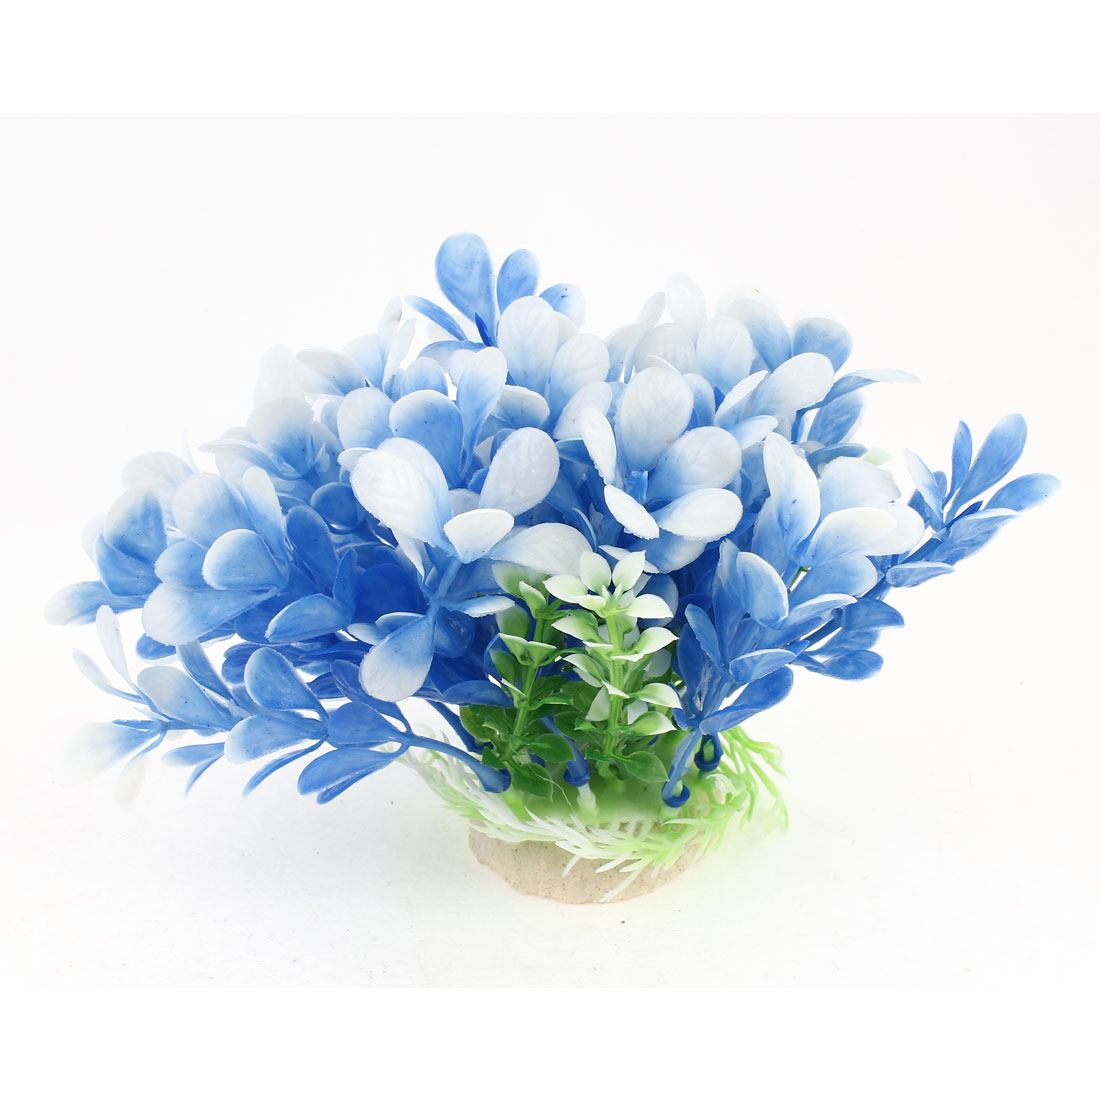 "4"" High Blue White Plastic Artificial Aquatic Plant Accent for Aquarium Fish Tank"